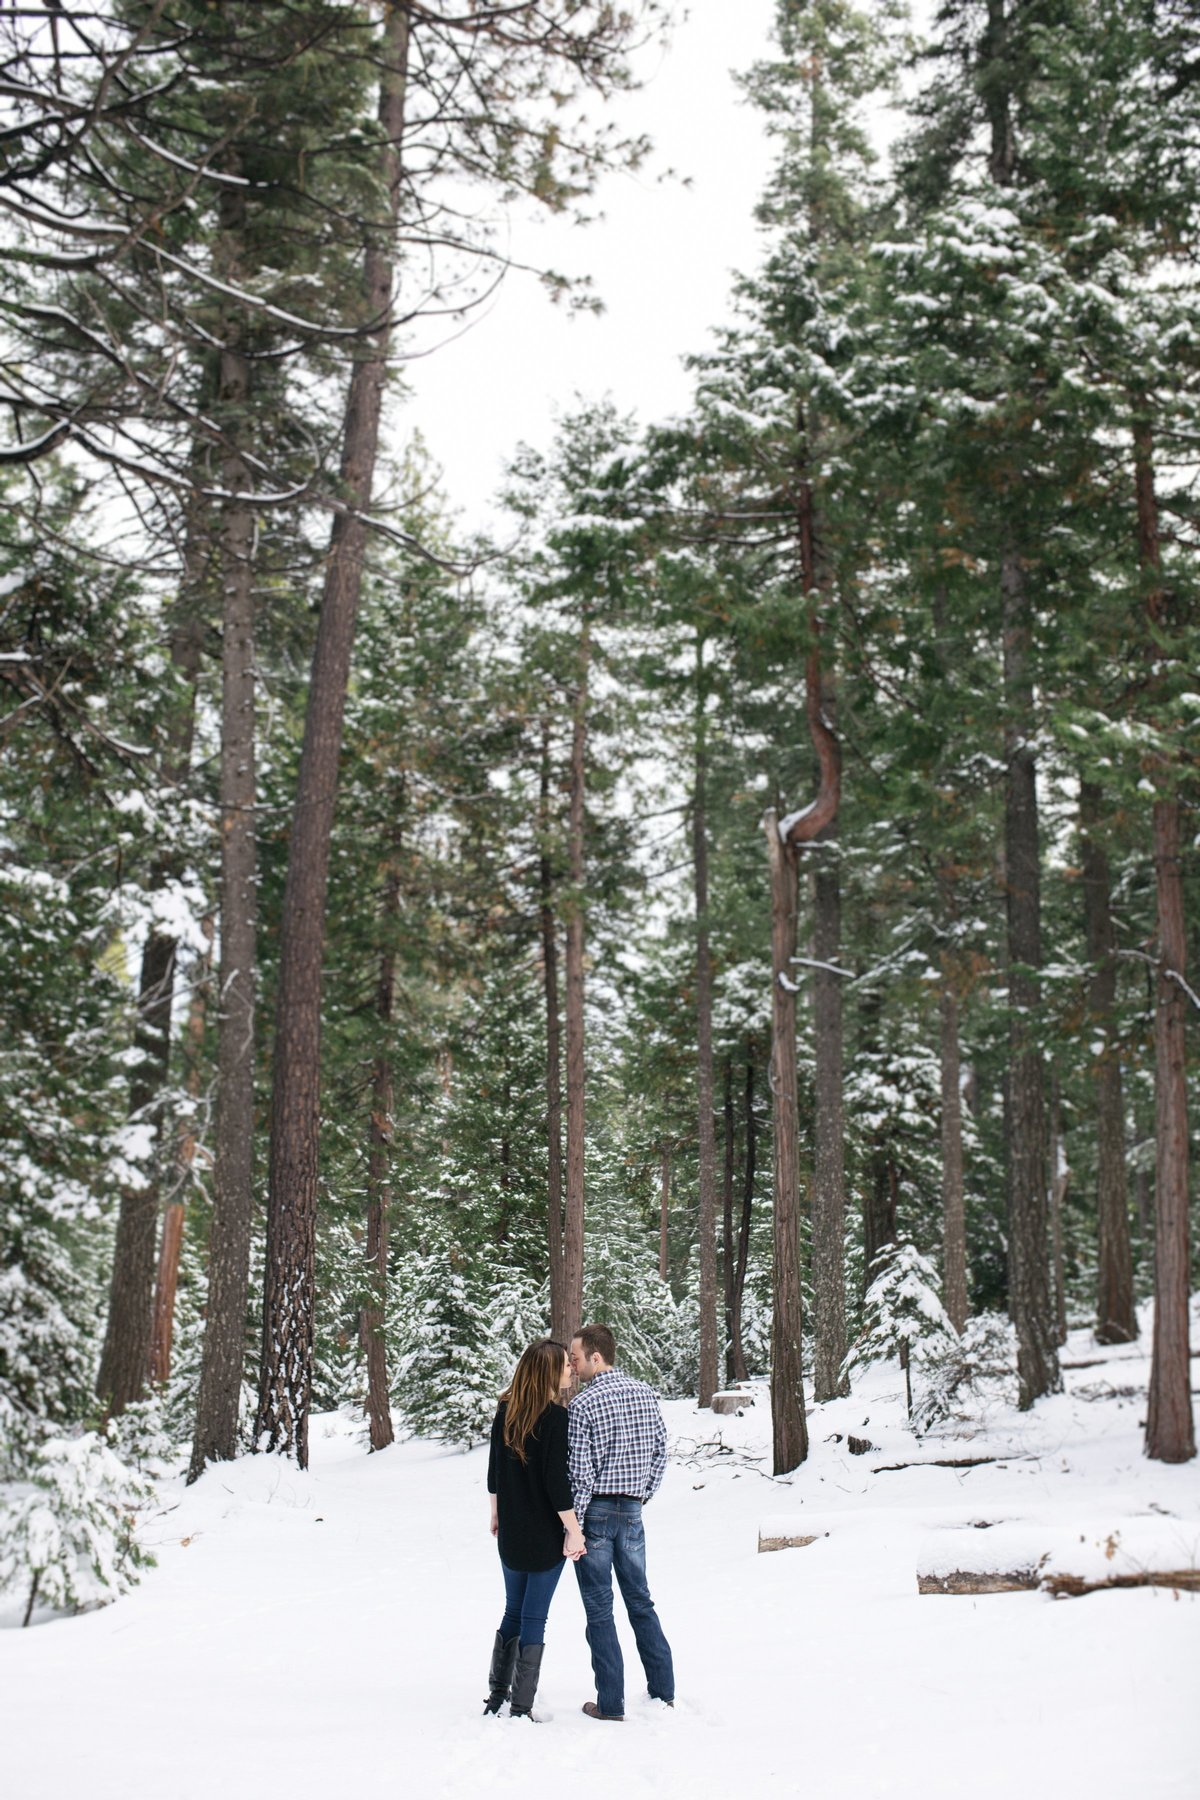 Engagement session in snow Lake Tahoe, Ca